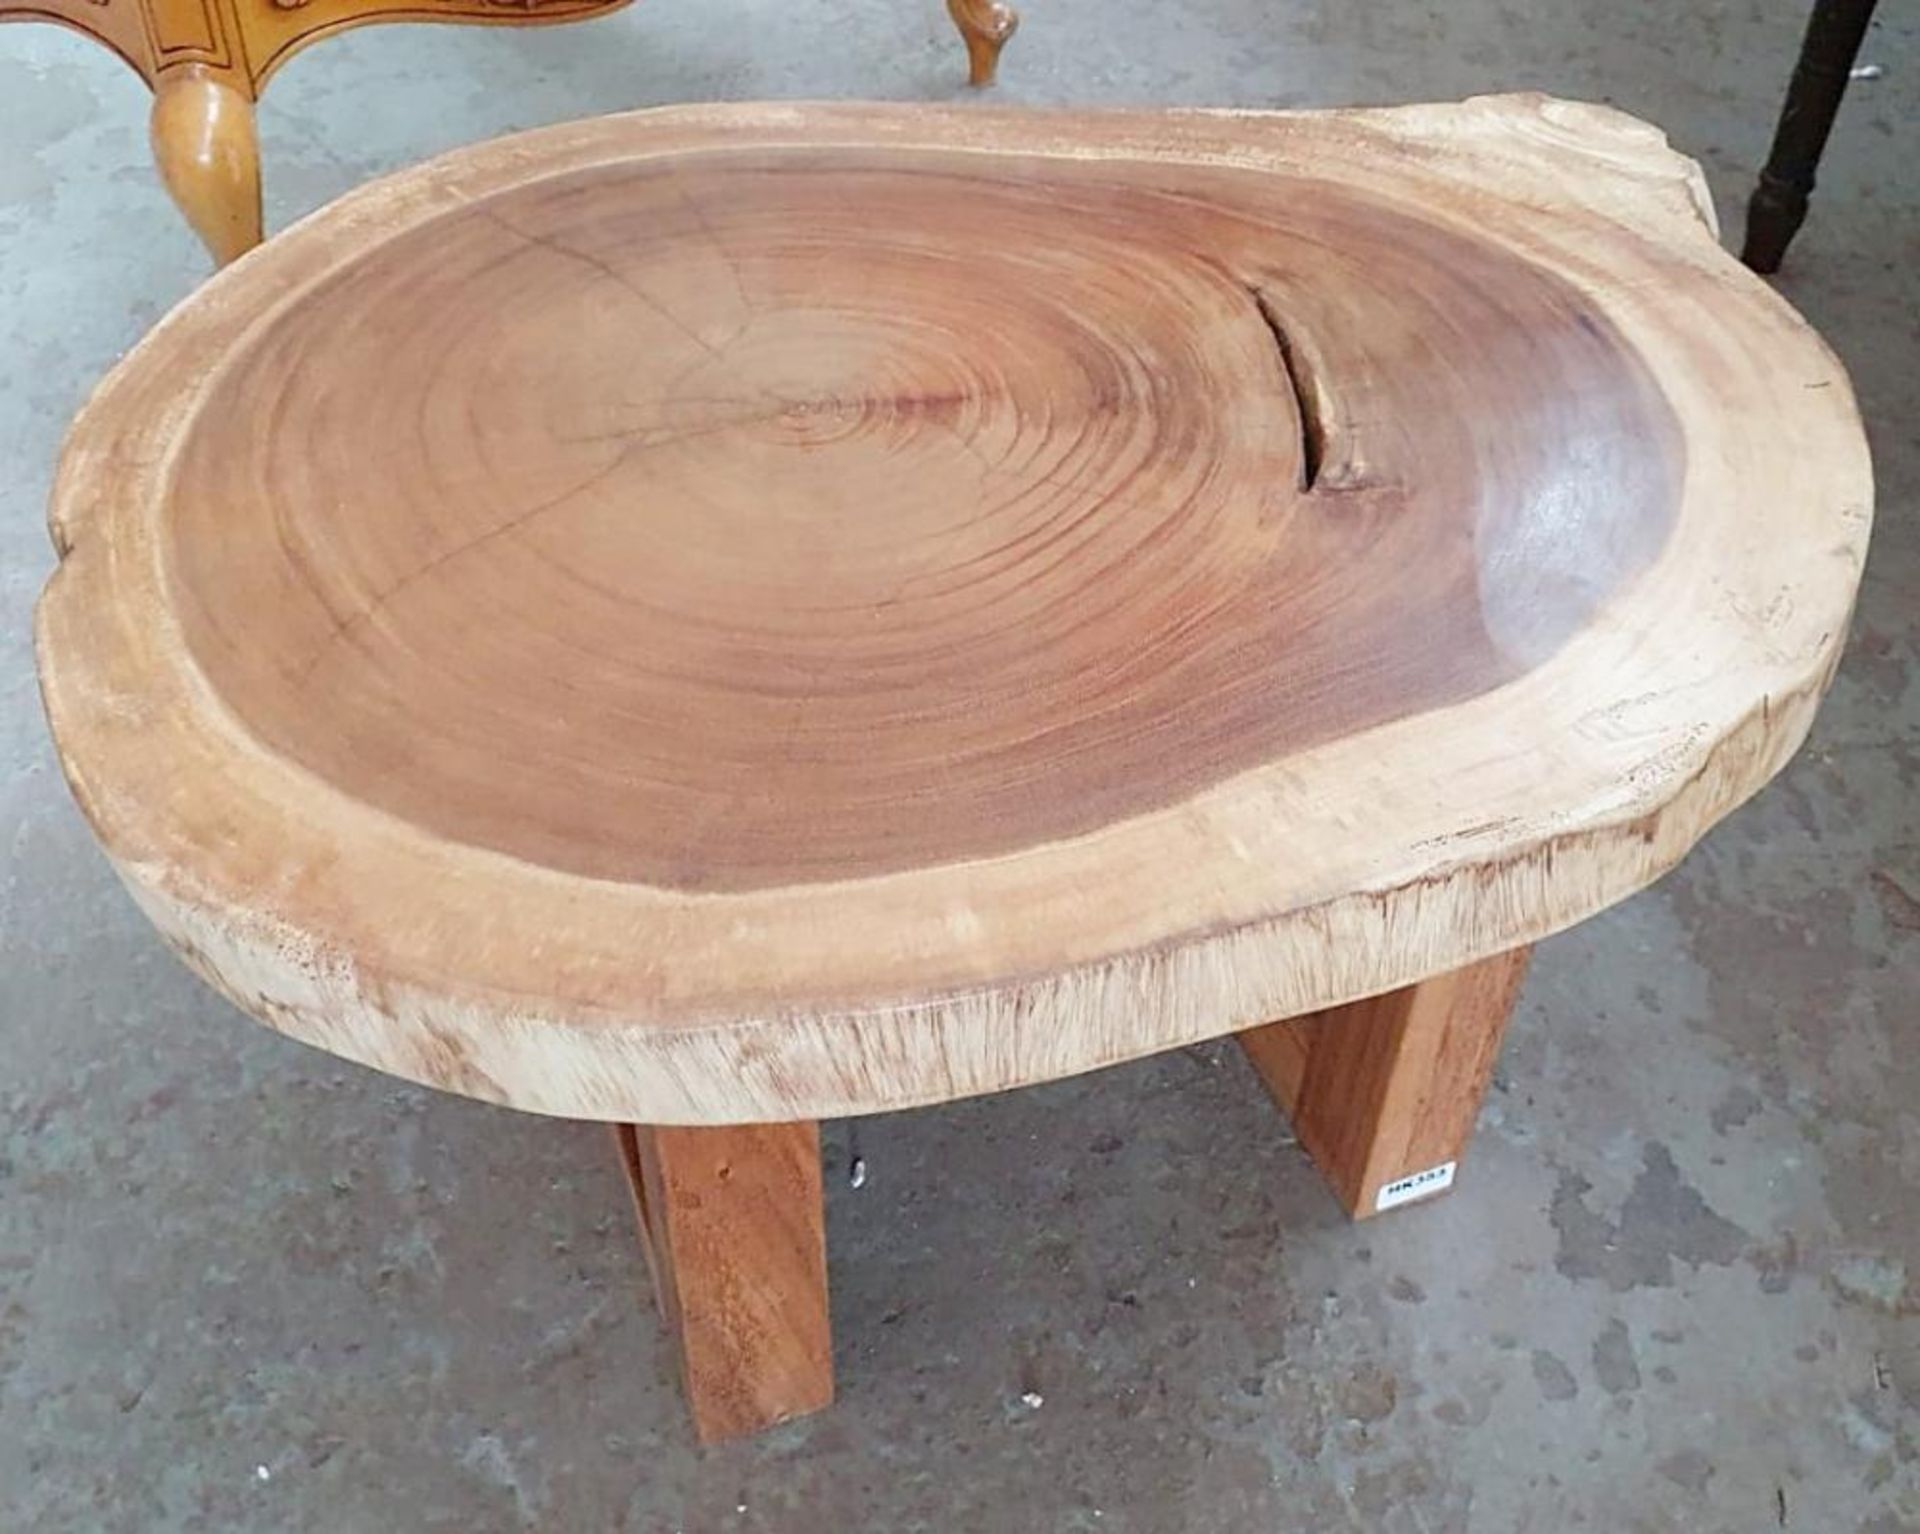 Los 3647 - 1 x Unique Reclaimed Solid Tree Trunk Coffee Table With Square Base - Dimensions (approx): Height 45